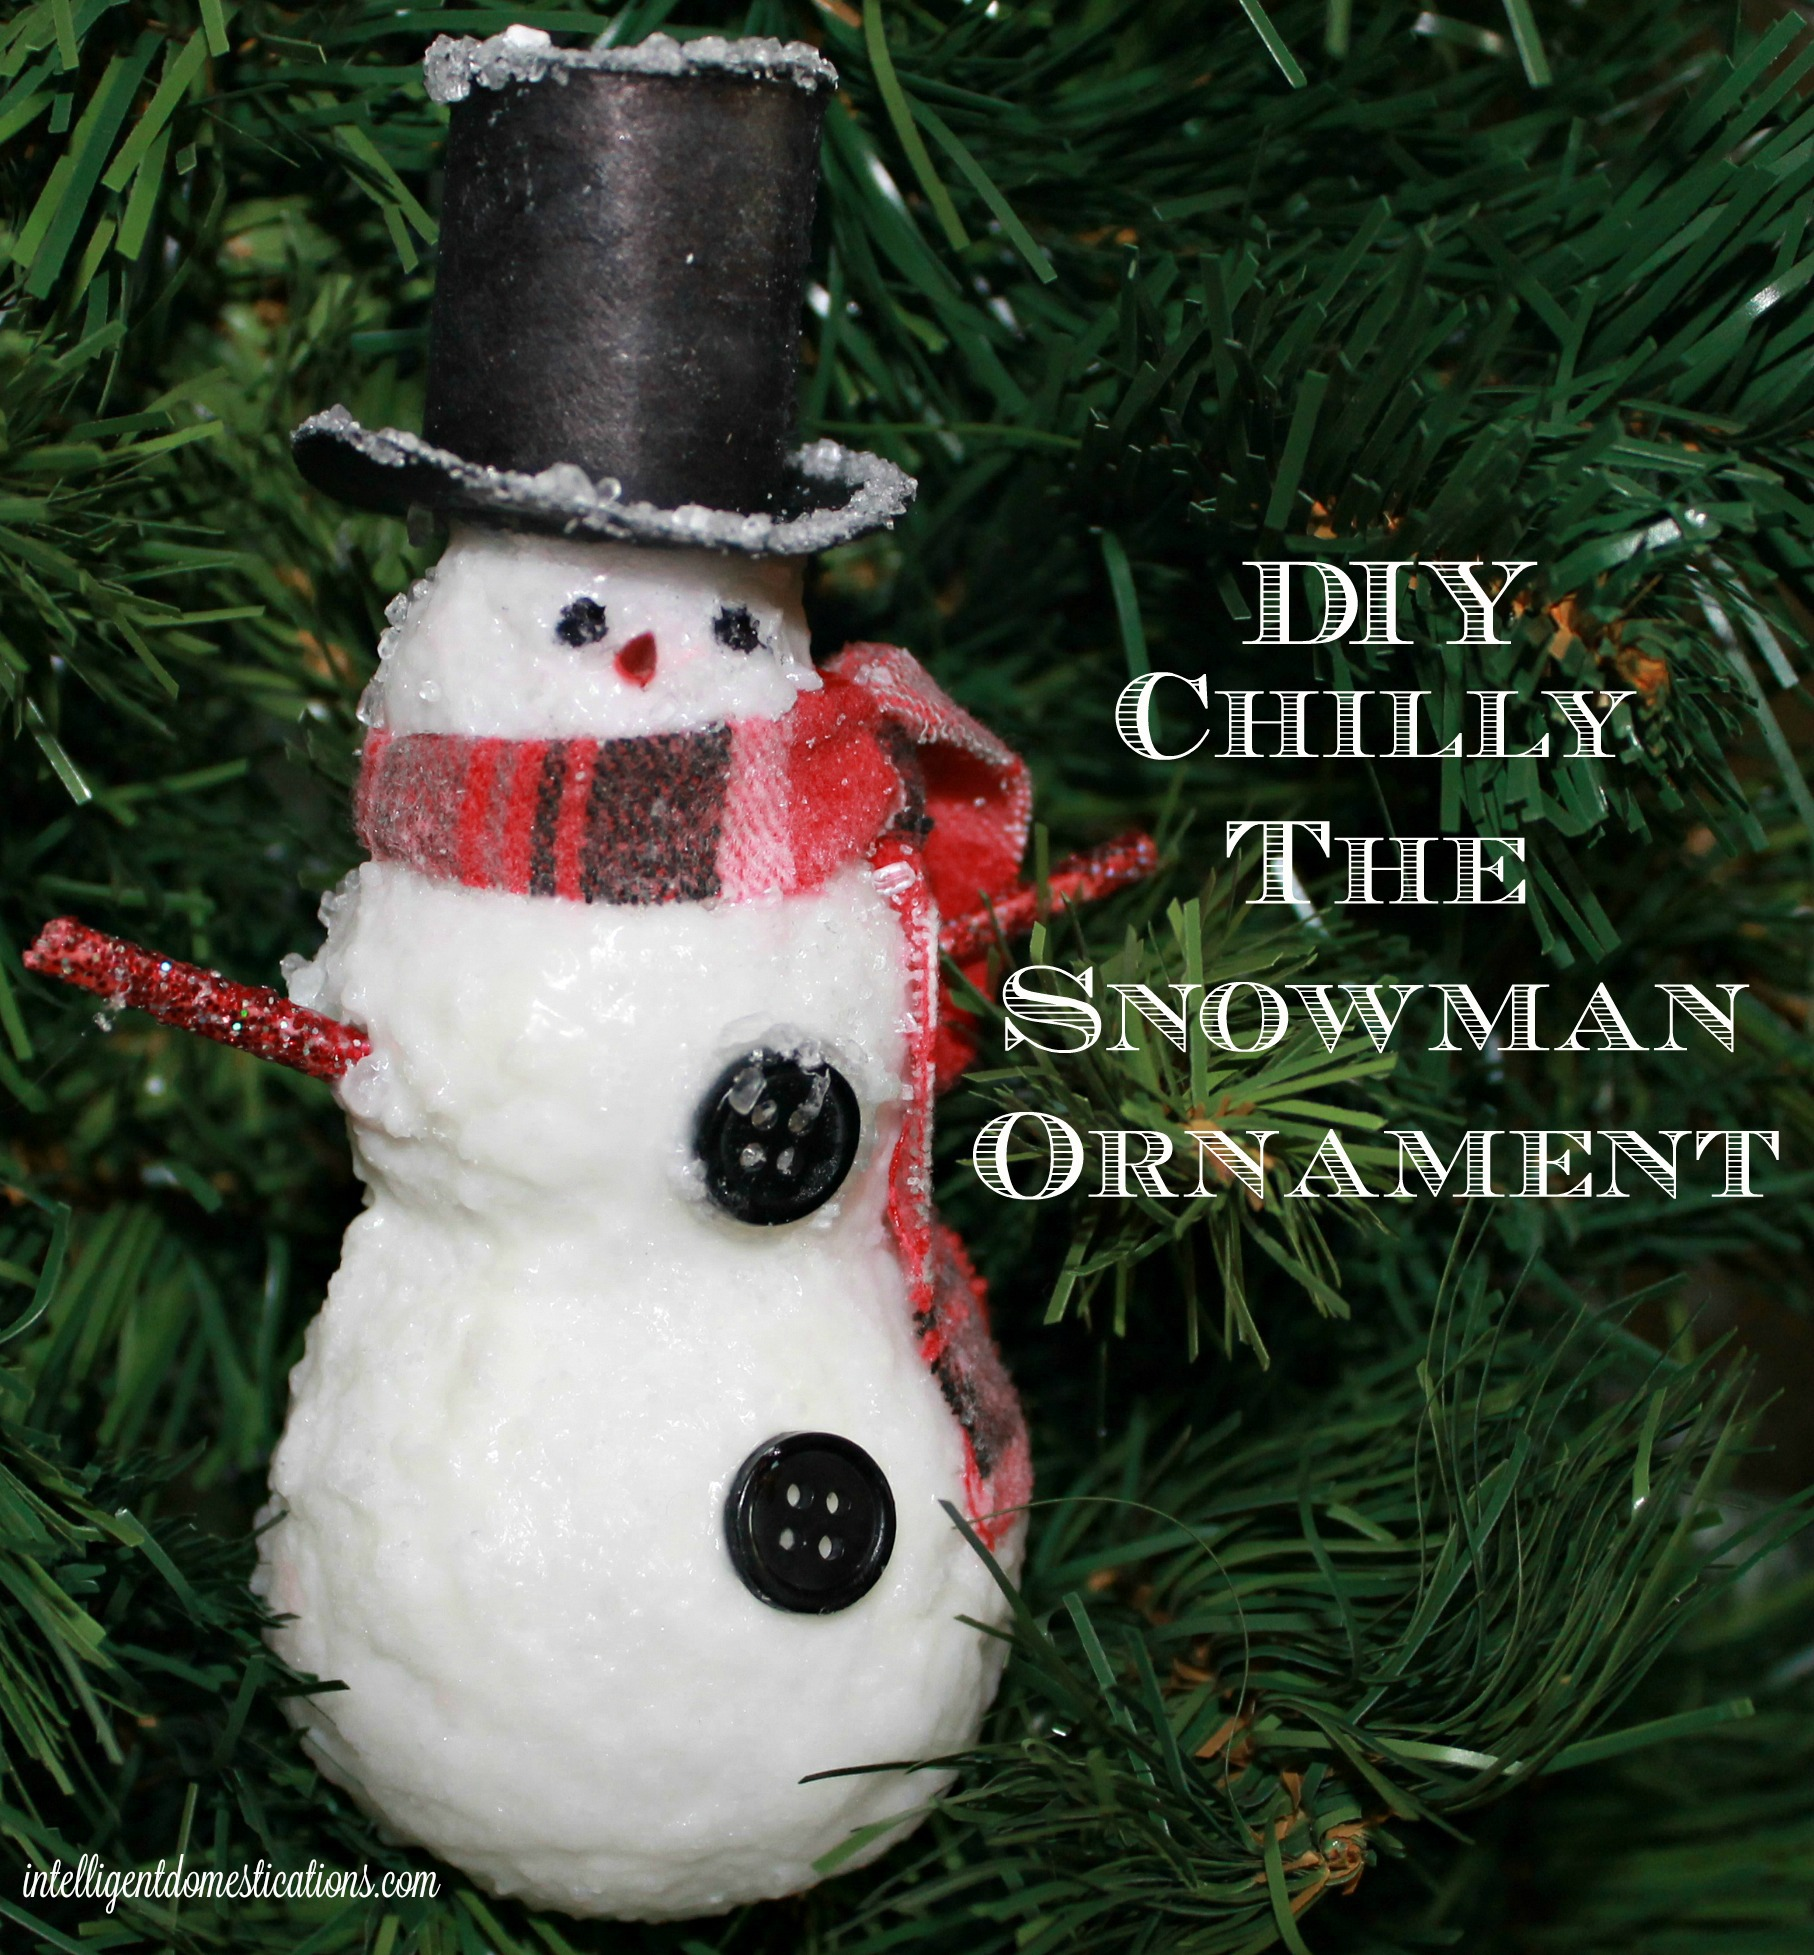 DIY Chilly The Snowman Ornament Intelligent Domestications